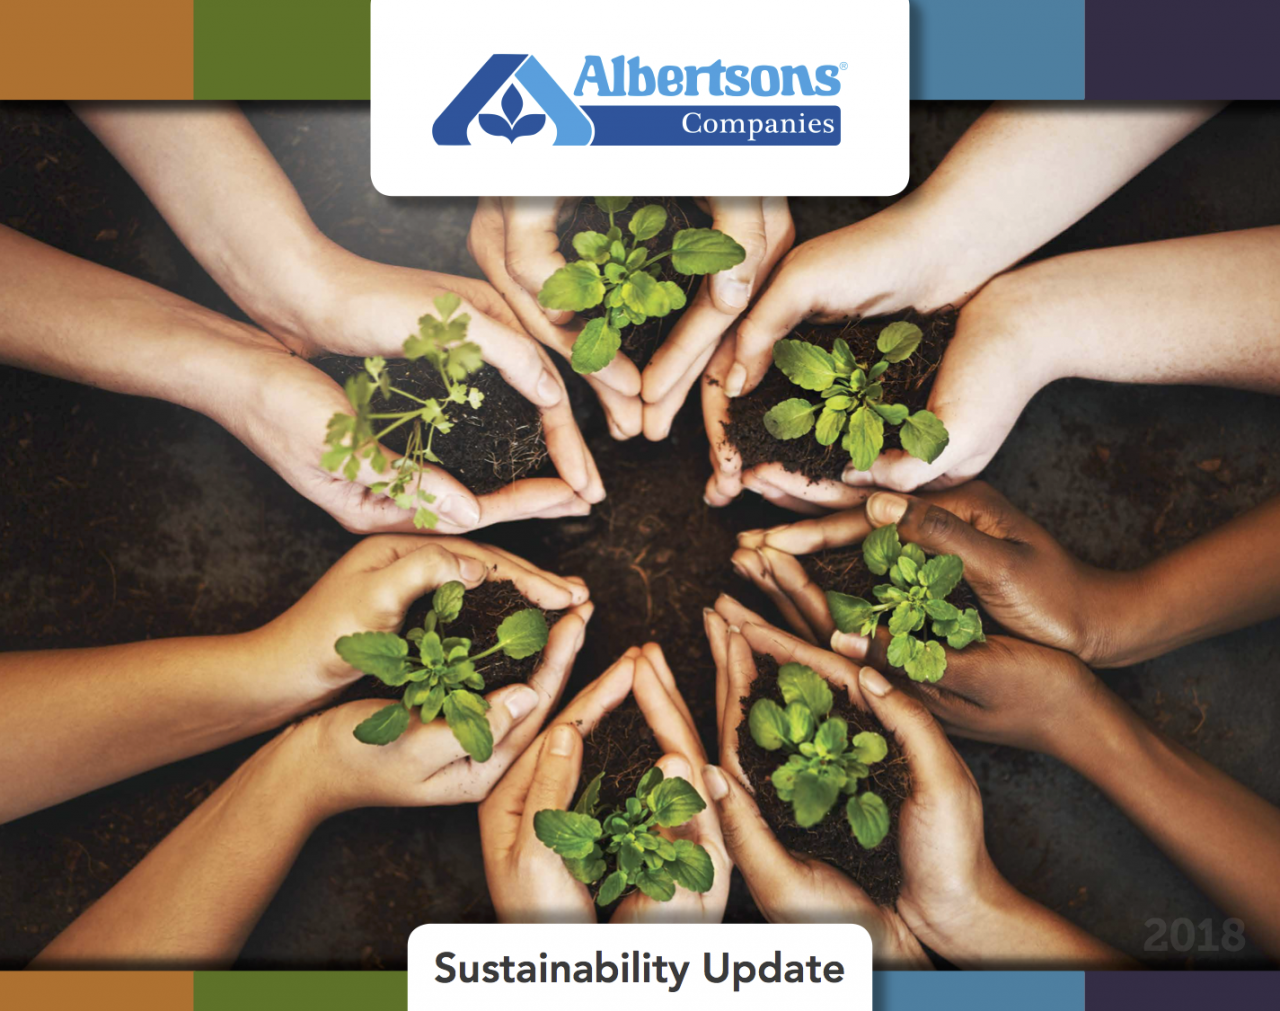 AlbertsonsCompanies_SustainabilityUpdate_2018_copy.png